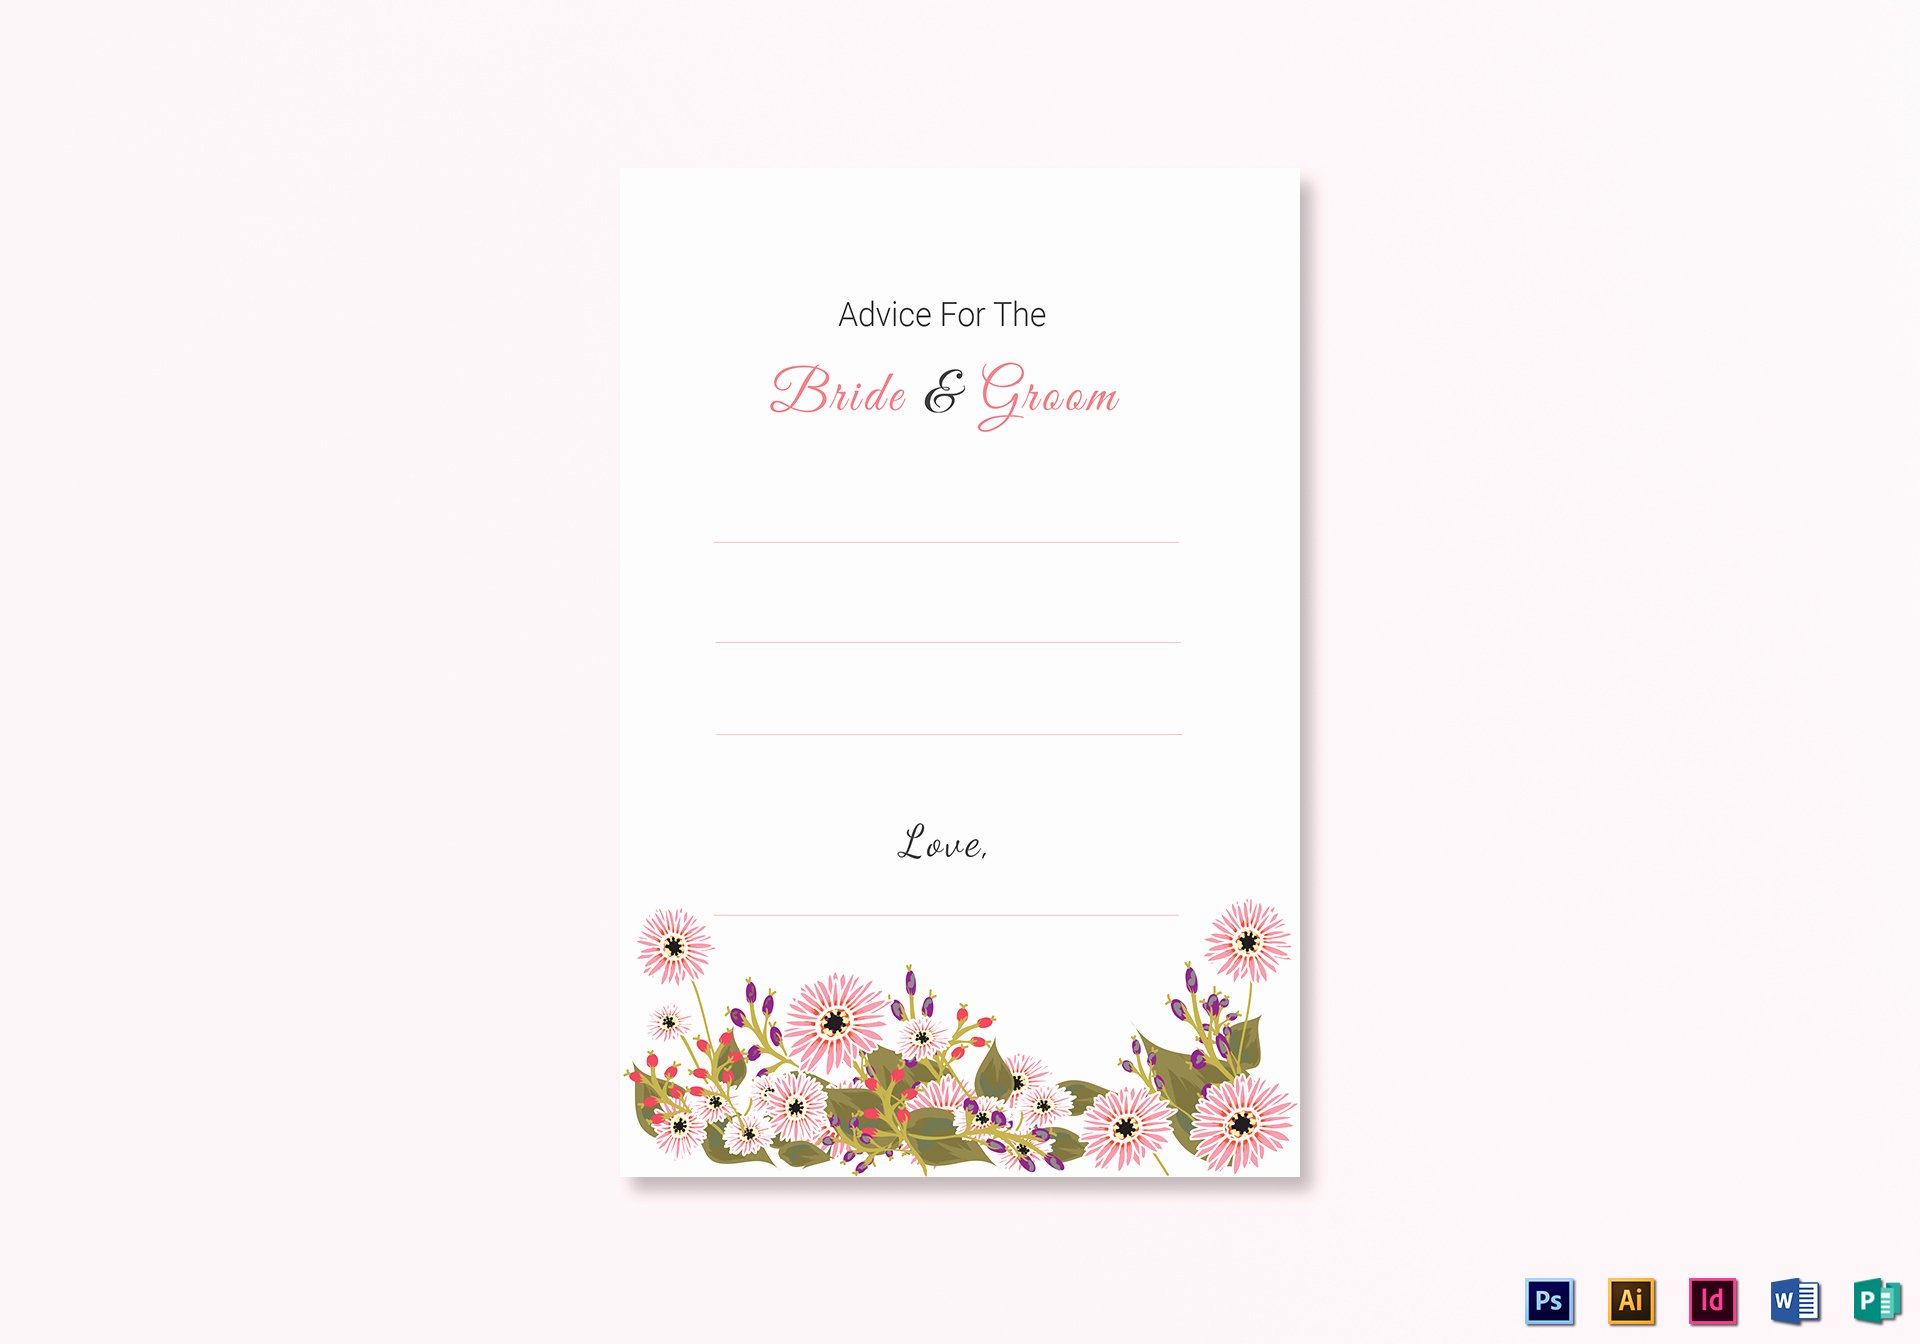 Wedding Advice Cards Template Beautiful Floral Wedding Advice Card Design Template In Illustrator